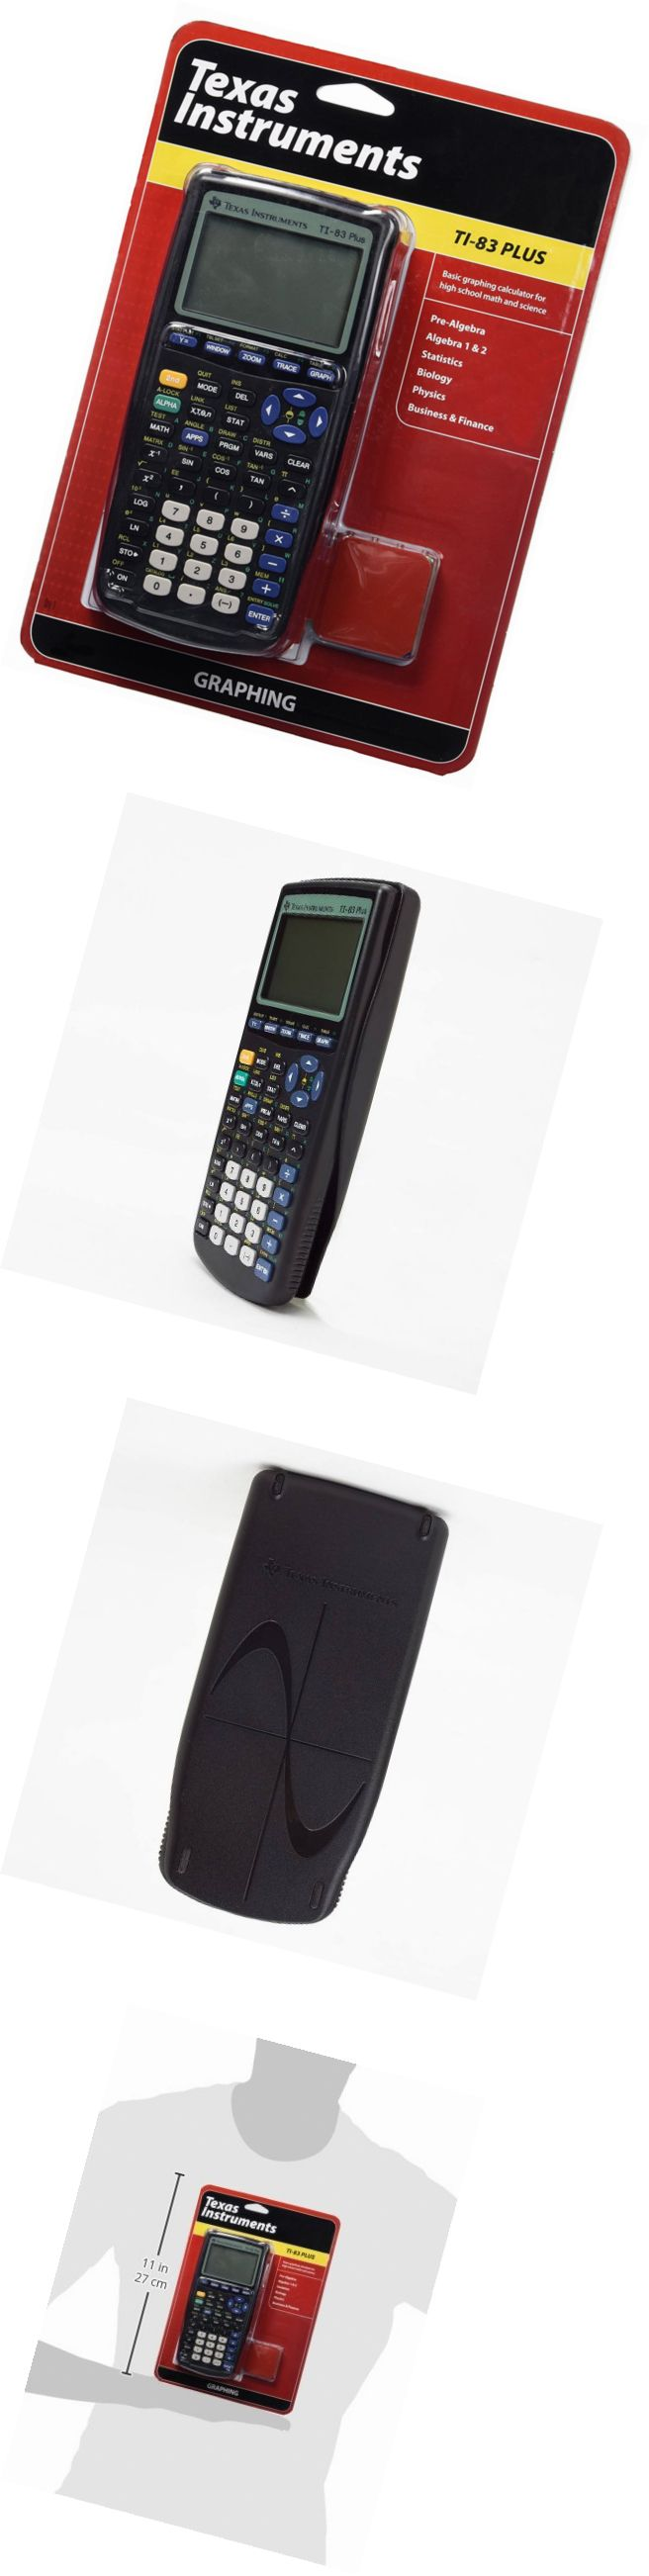 stats solver best ideas about calculatrice ti calculette clingo best ideas about calculatrice ti calculette calculators texas instruments ti 83 plus graphing calculator buy it